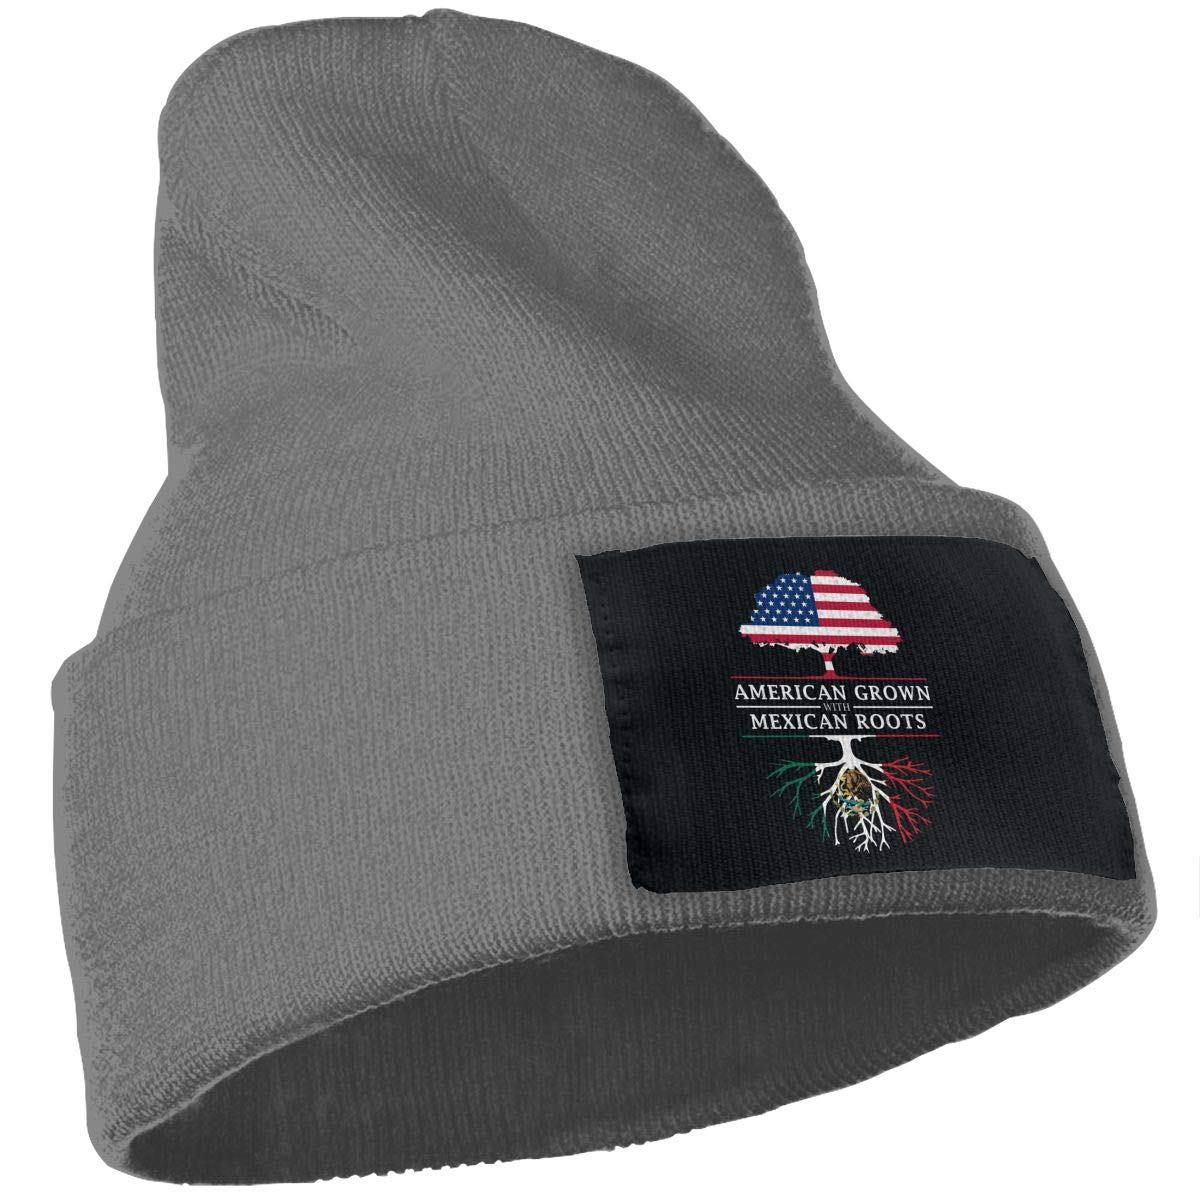 Zml0pping American Grown with Mexican Roots Unisex Cap